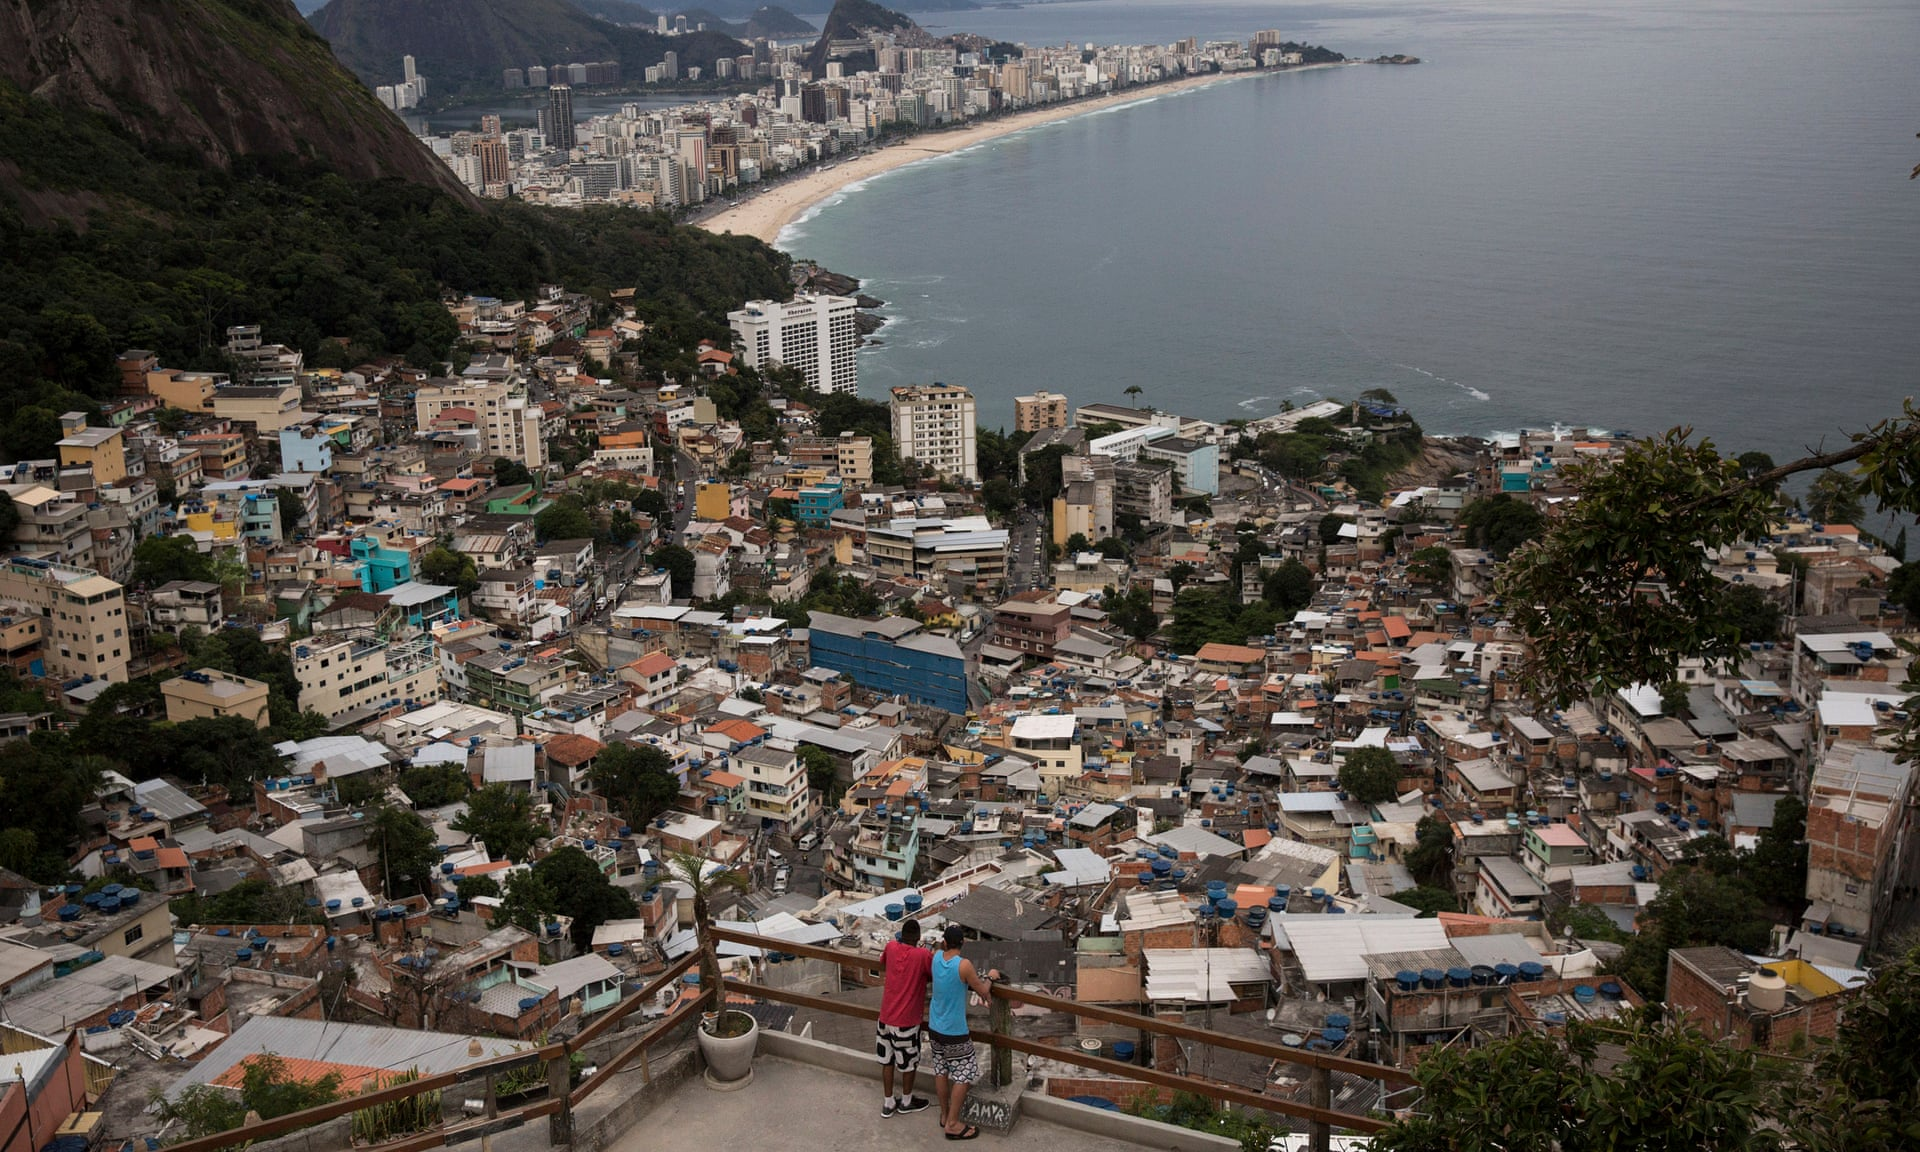 Men overlook the city from the Vidigal favela, in Rio de Janeiro, Brazil. Photograph: Renata Brito/AP